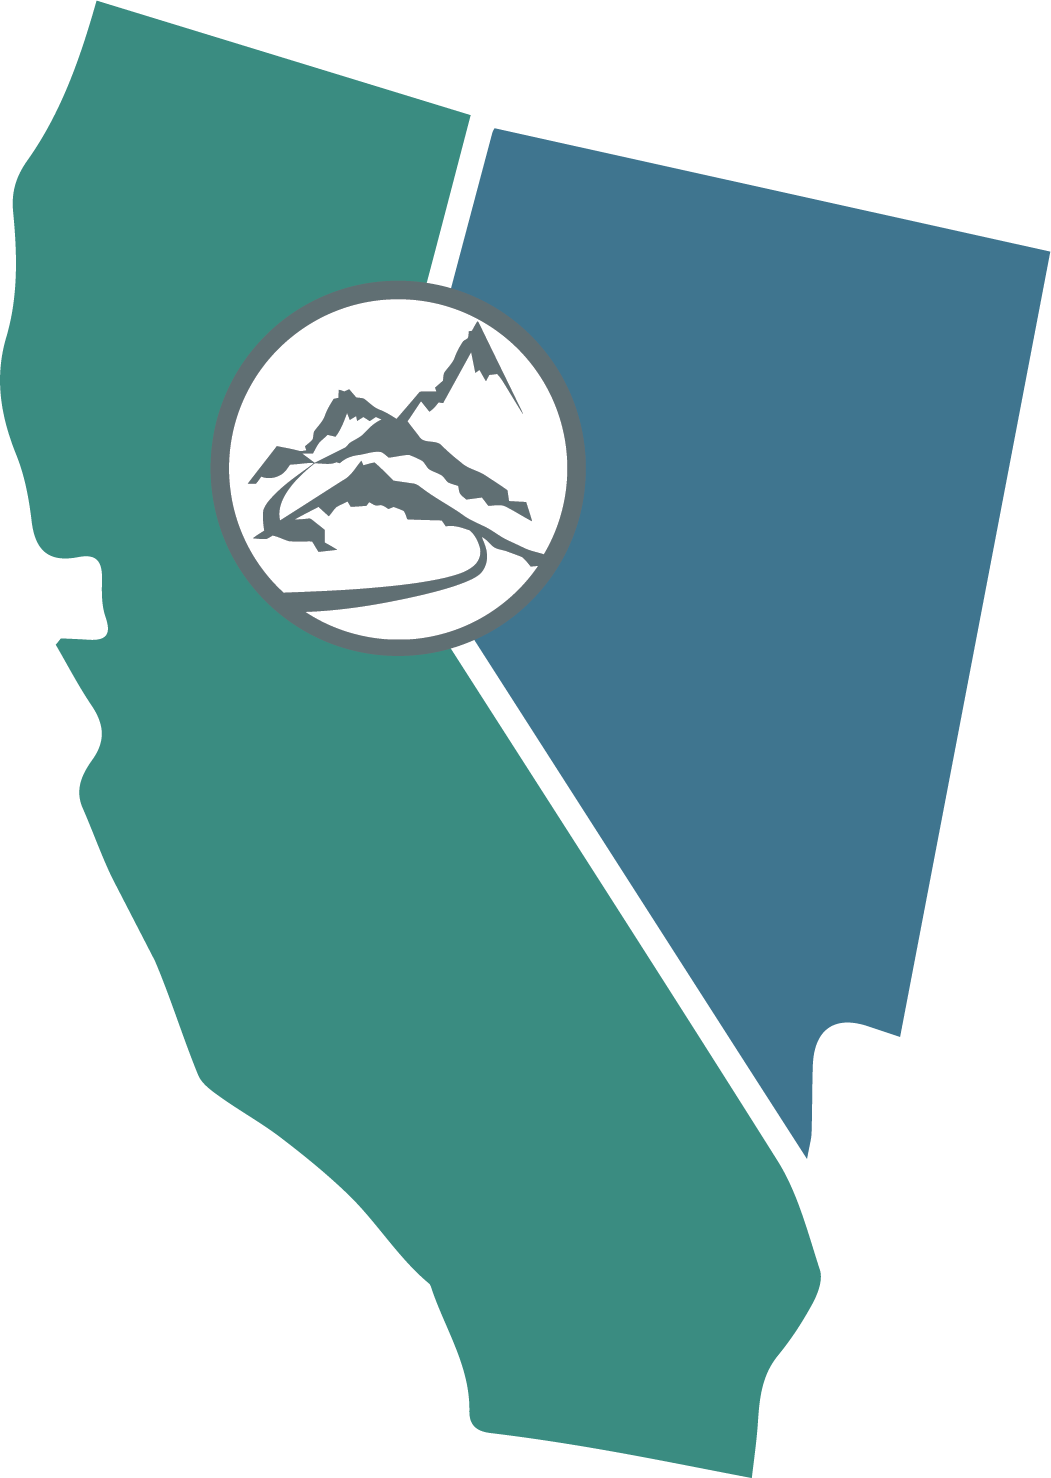 CA_NV_Map20190709a.png